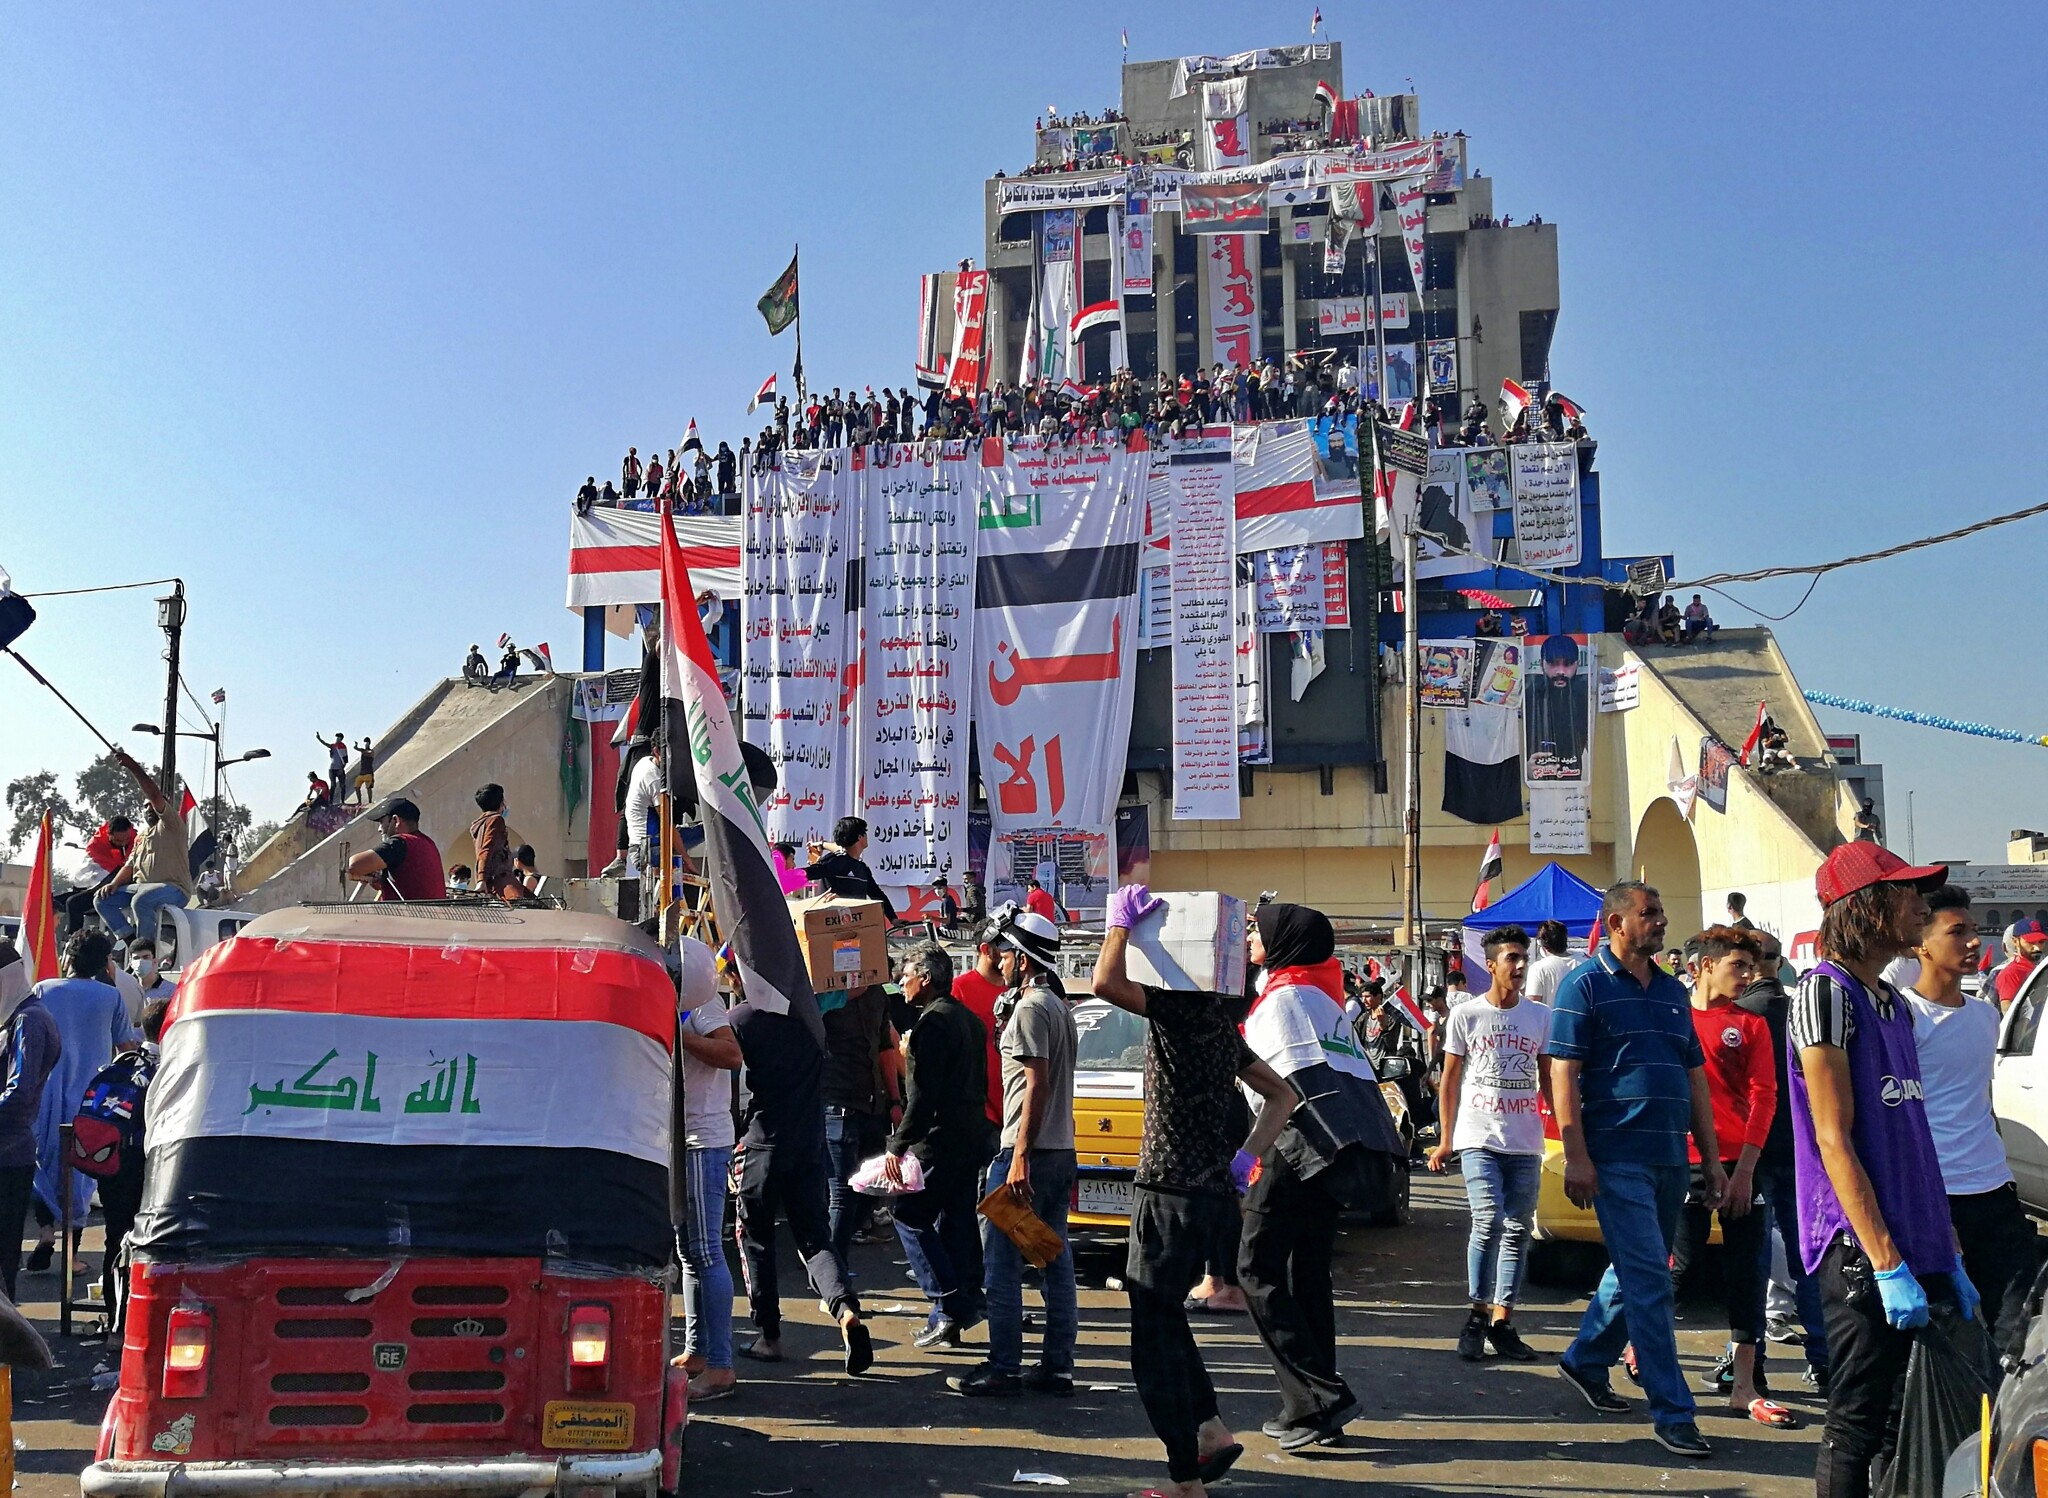 Iraqis focus anger on Iran, as they defy crackdown to hold biggest protests  yet | The Times of Israel